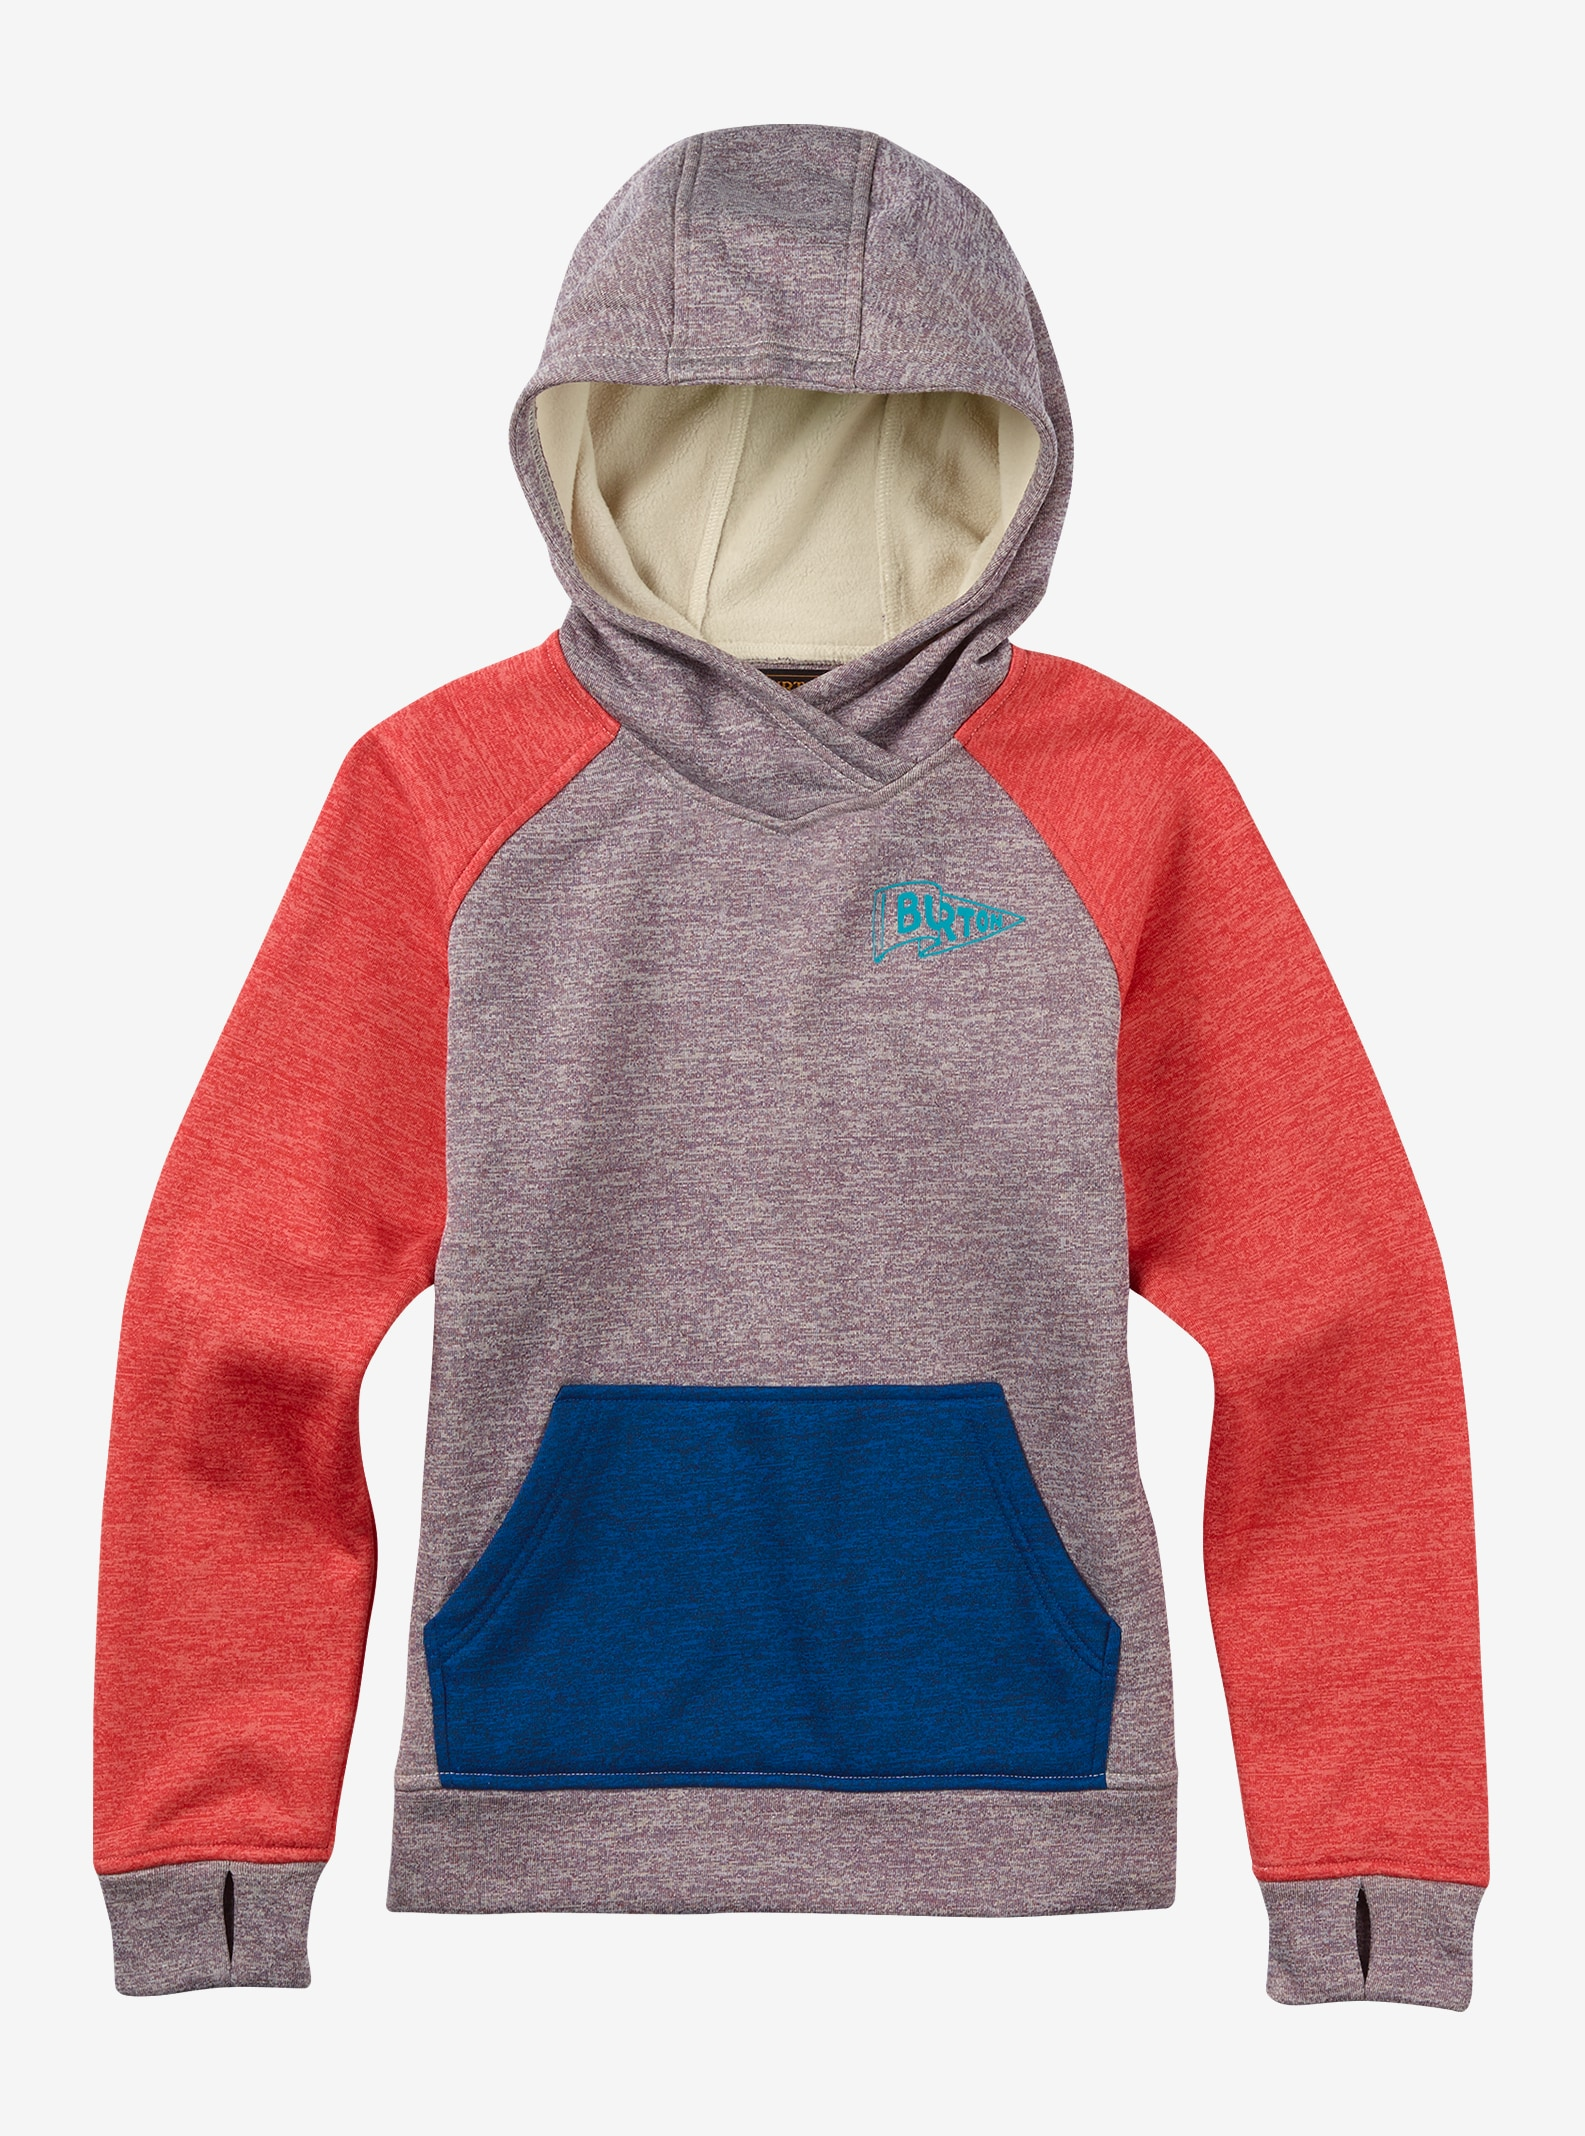 Burton Girls' Phantom Pullover Hoodie shown in Cavas / Mulled Grape Heather